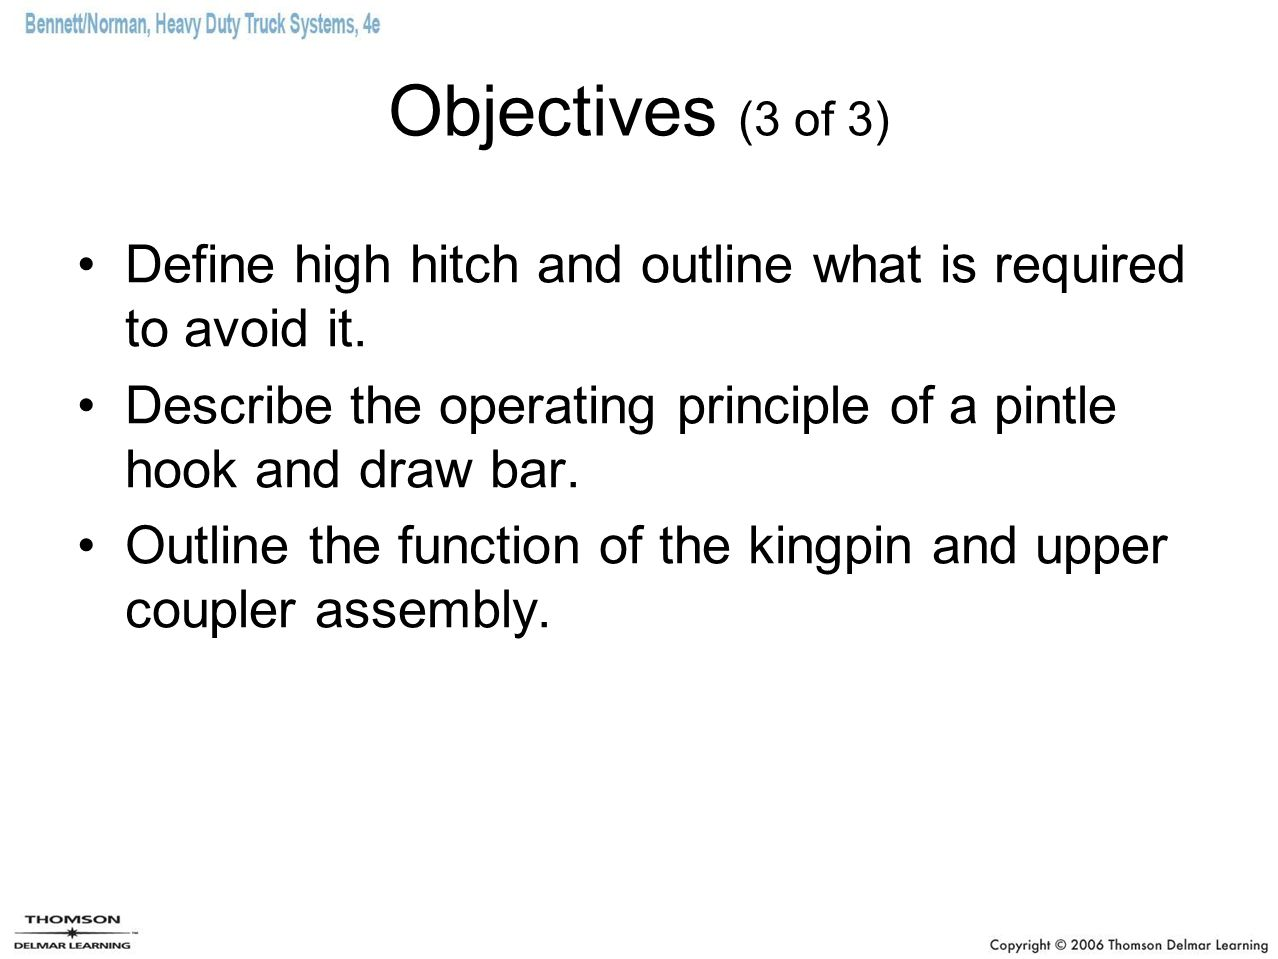 Objectives (3 of 3) Define high hitch and outline what is required to avoid it. Describe the operating principle of a pintle hook and draw bar.